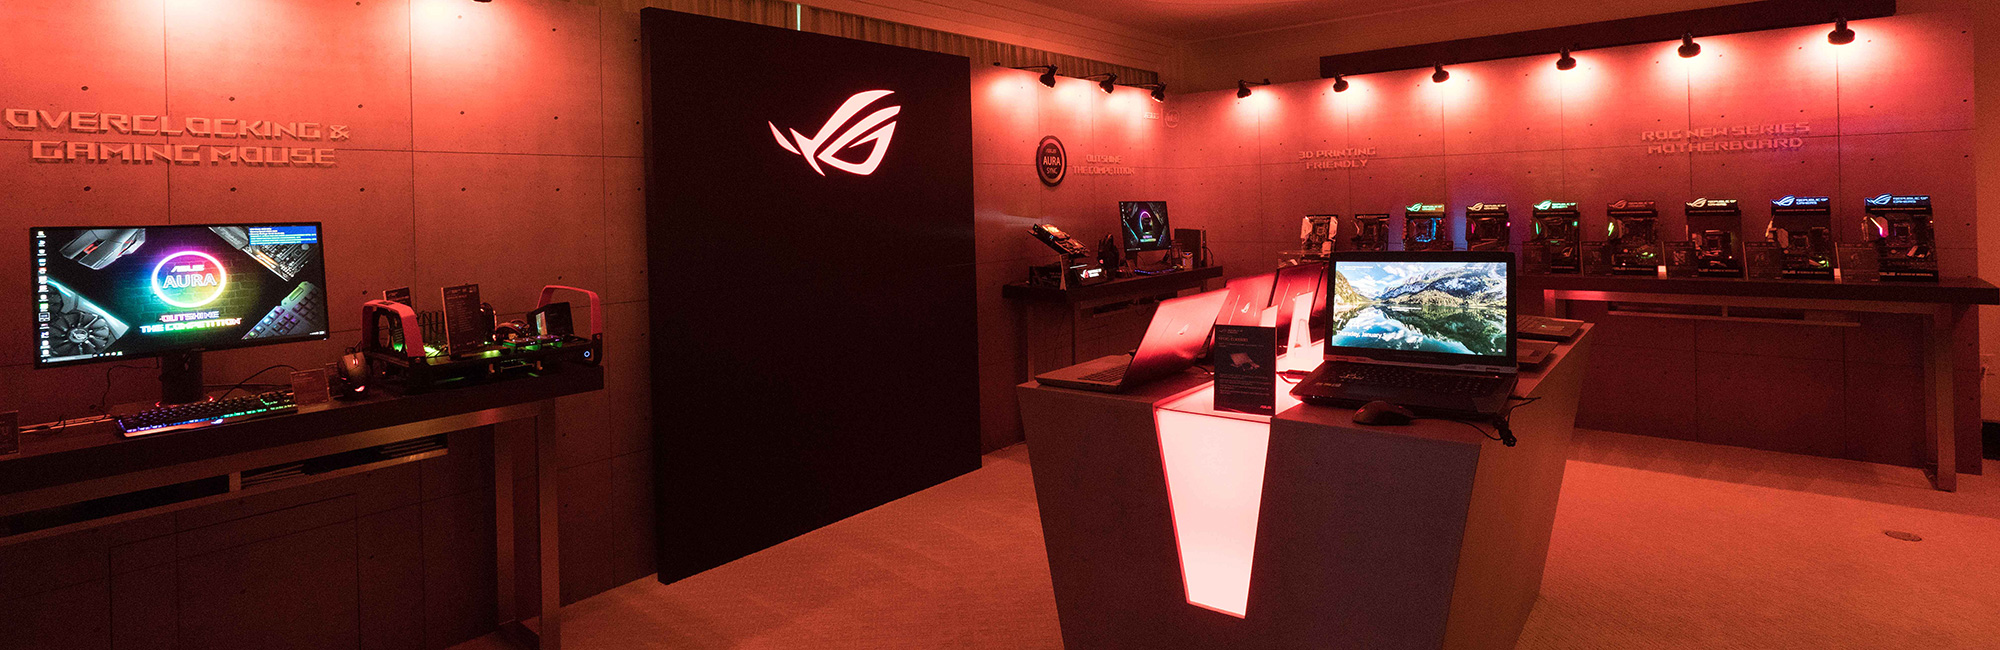 CES 2017: Latest ROG Gaming Systems and Mods on Display | ROG